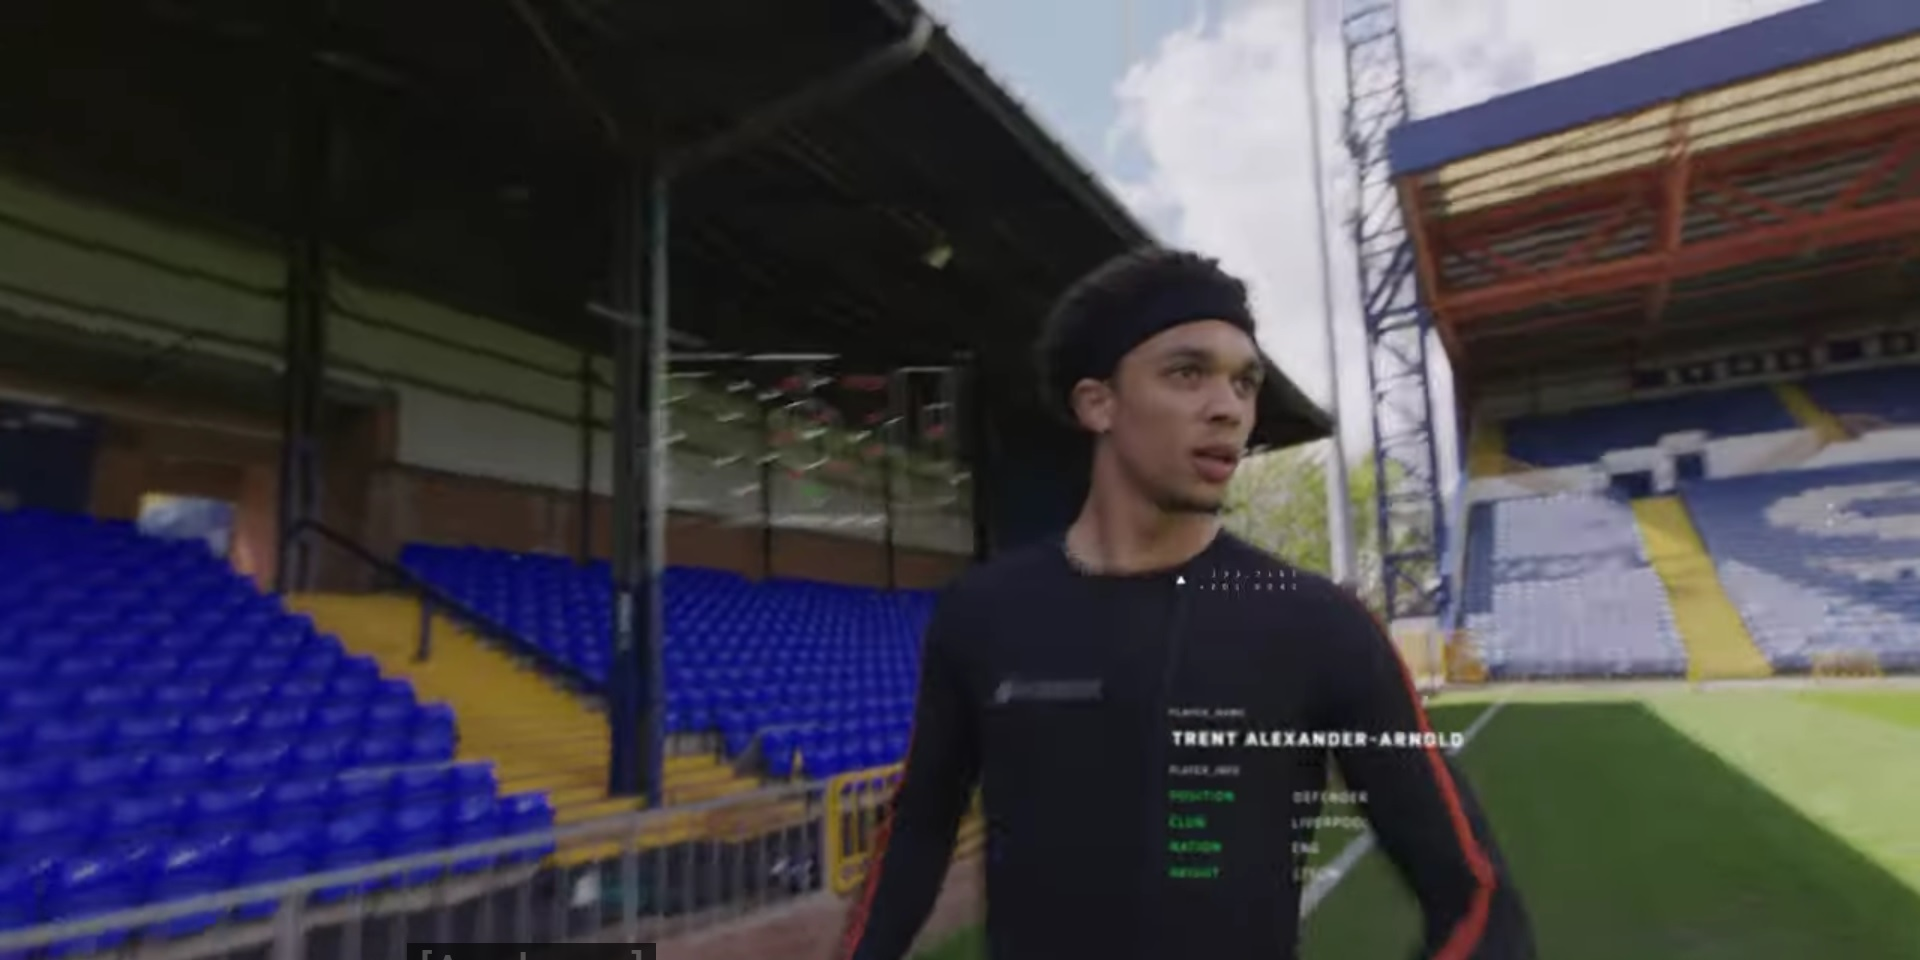 (Video) Liverpool's Trent Alexander-Arnold stars in new FIFA 22 reveal trailer